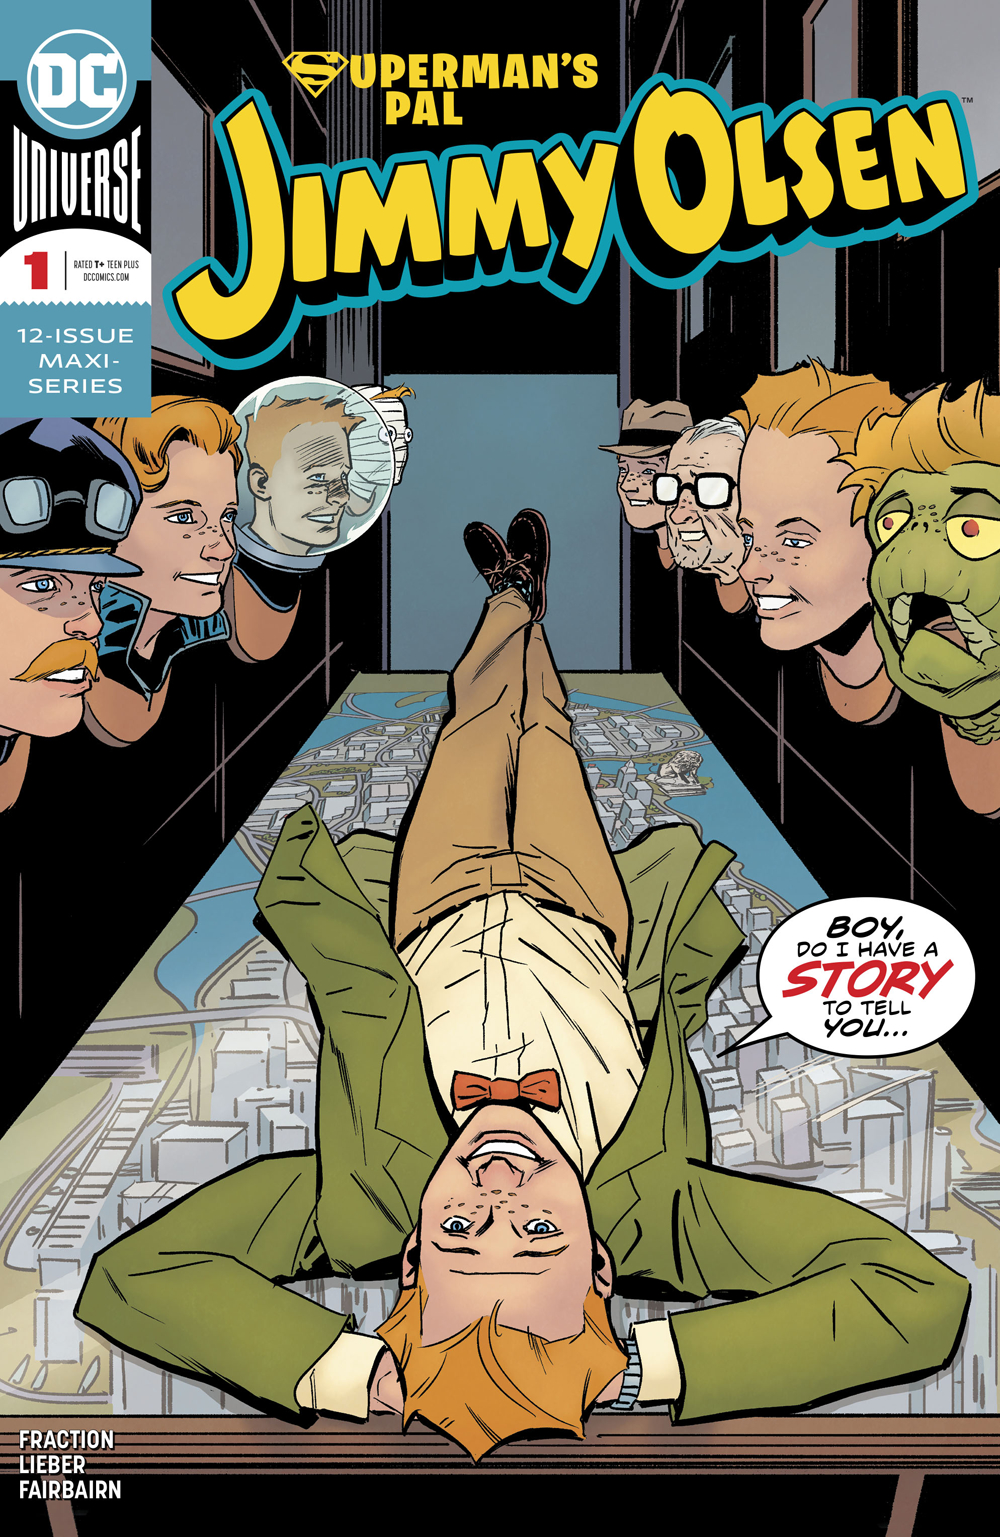 JIMMY OLSEN #1 (OF 12)